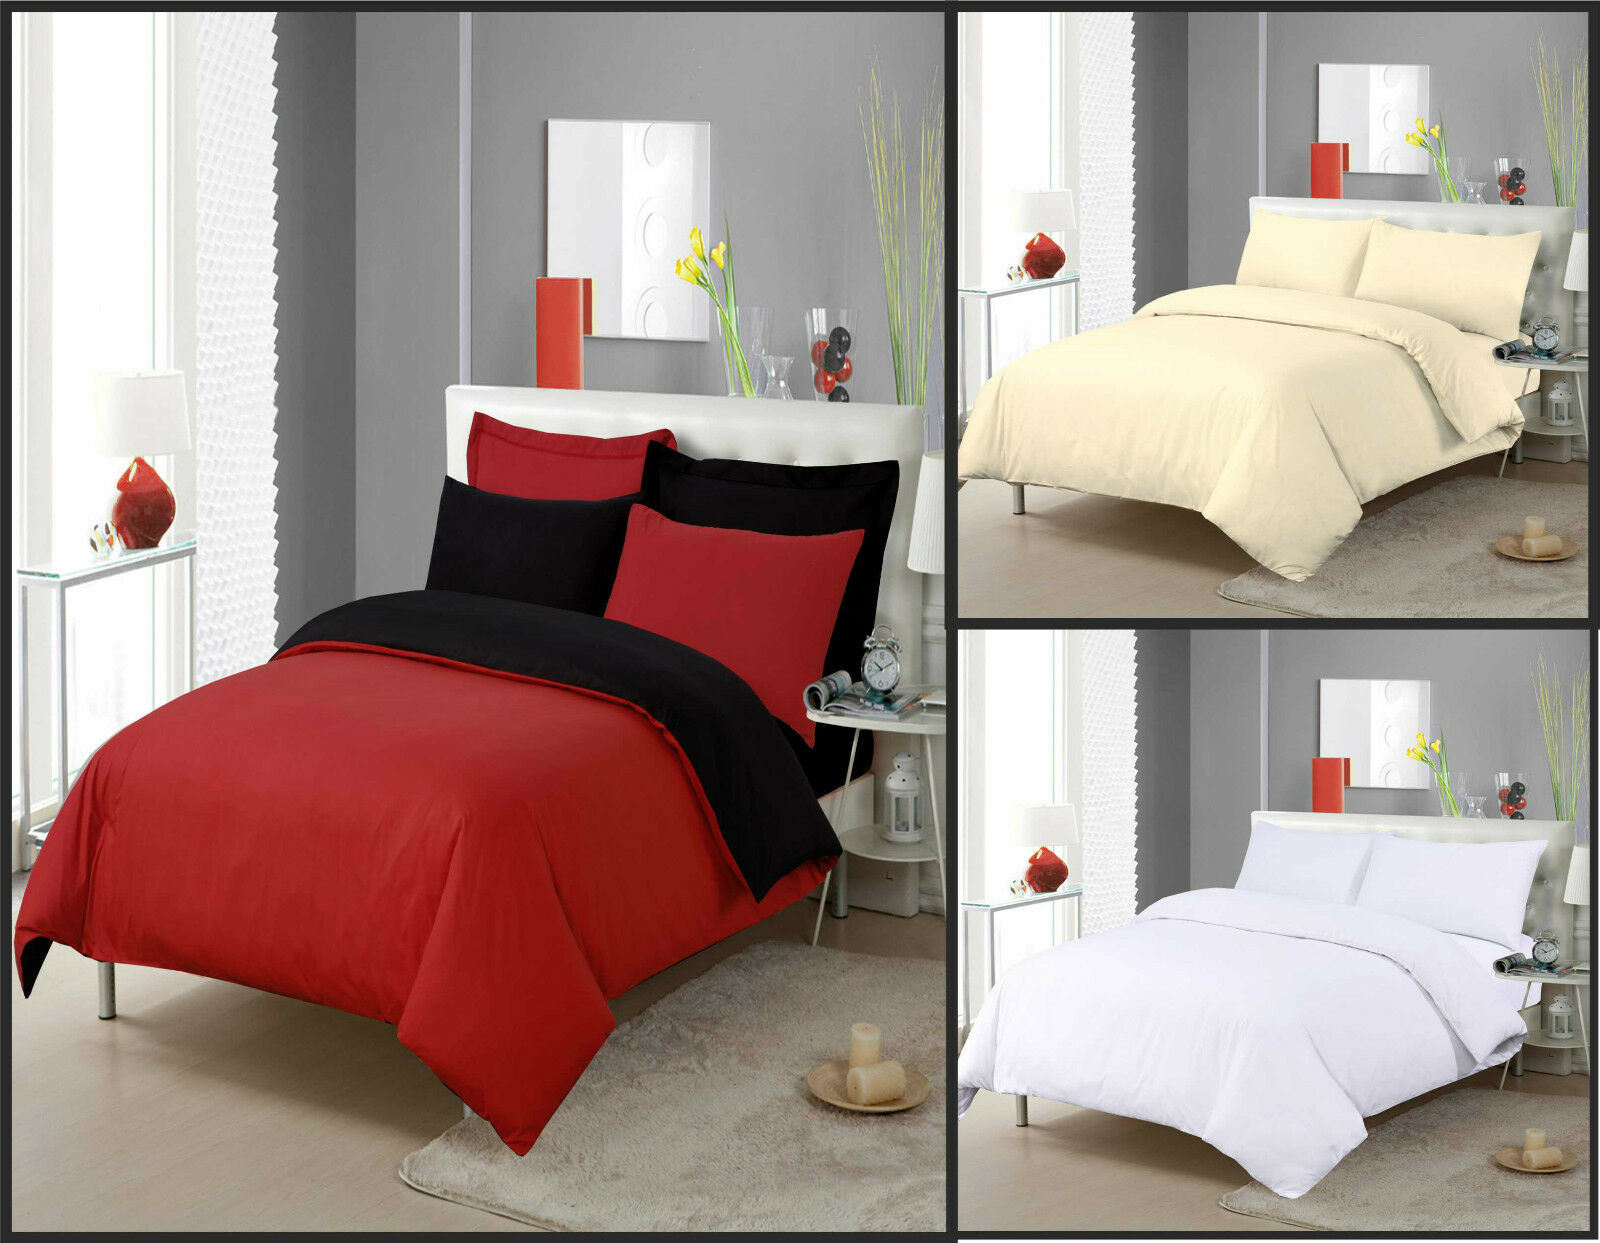 China Plain Dyed Duvet Set W Pillow Case Red Black White Cream Single Double King China Bedding Set And Bed Sheet Price